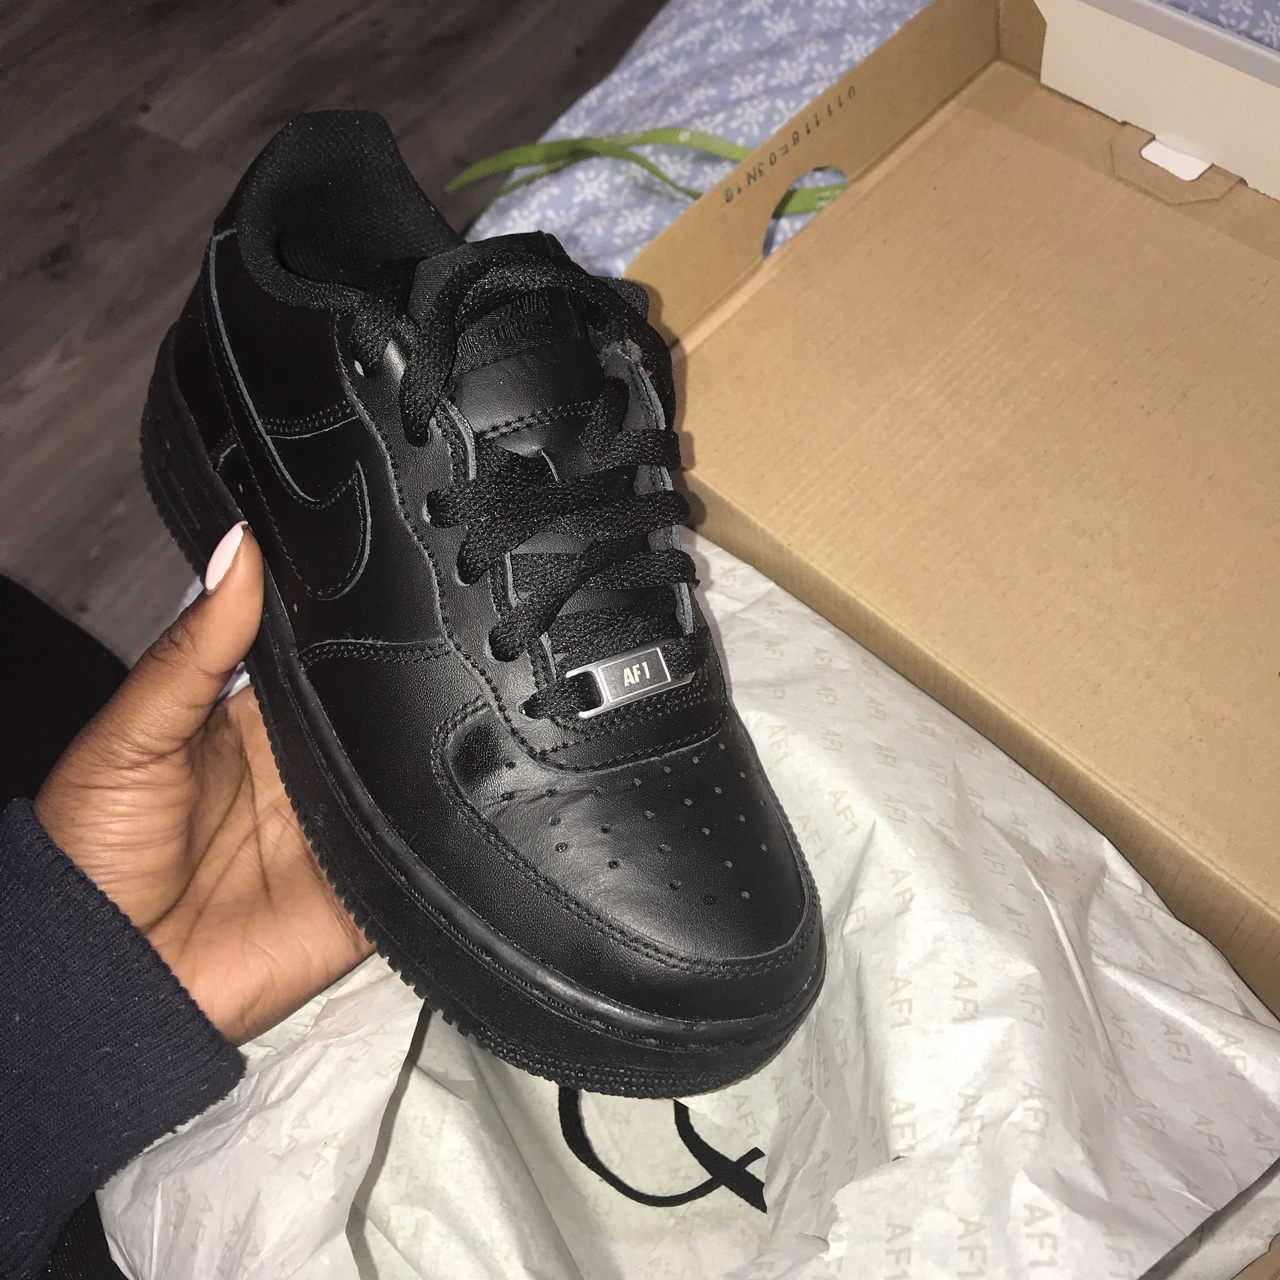 Size 3 Black Air Force Crease in the